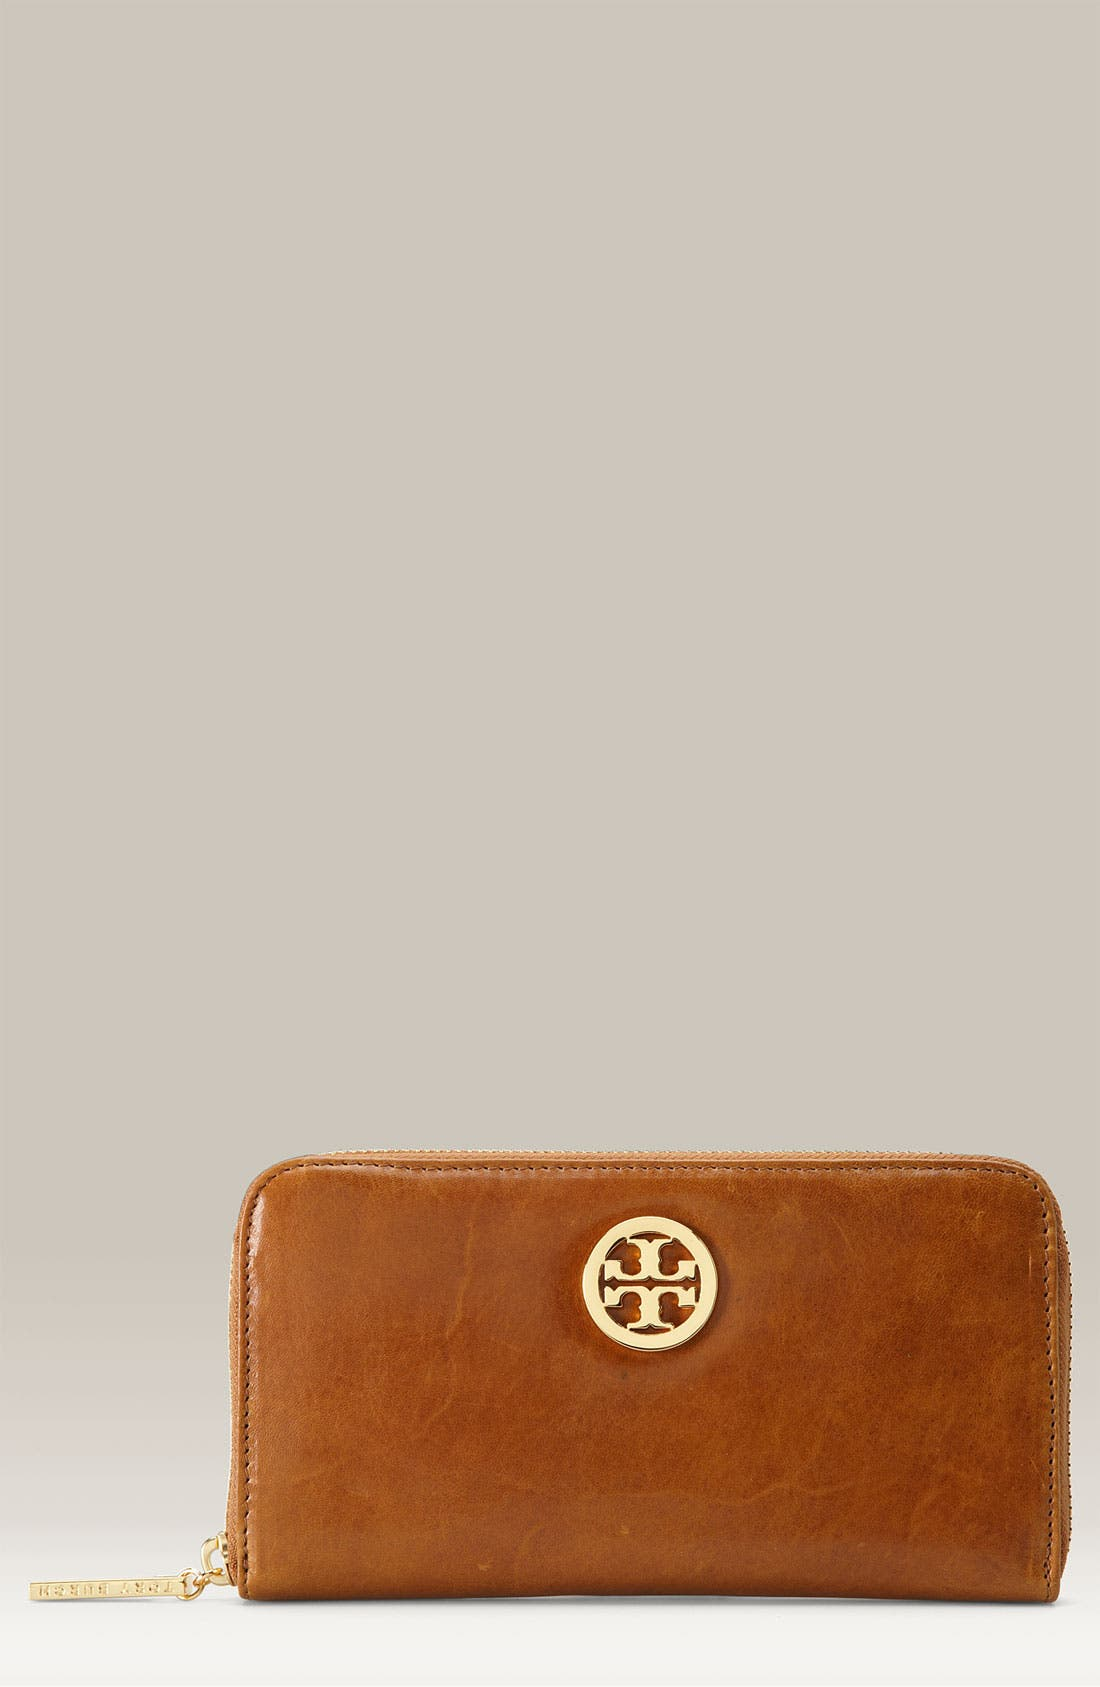 Alternate Image 1 Selected - Tory Burch Zip Around Continental Wallet